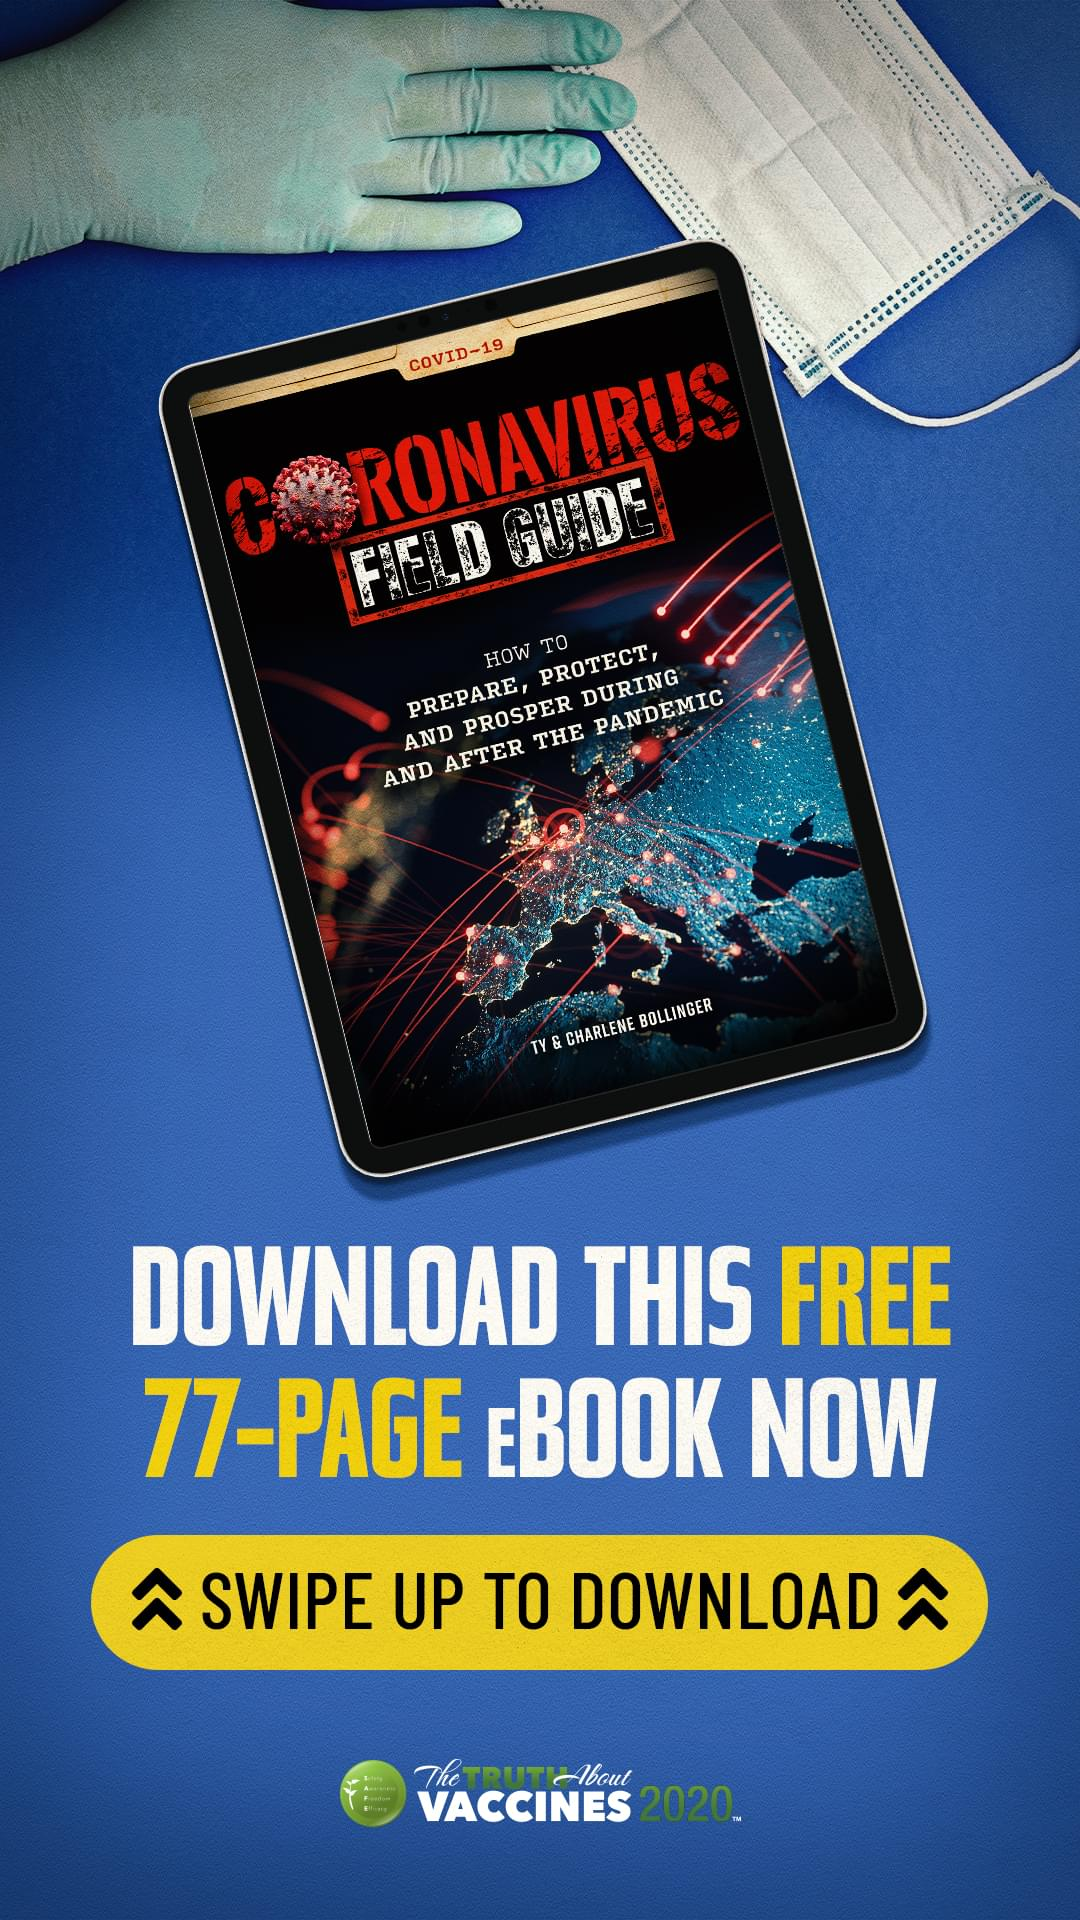 eBook-Coronavirus_Field_Guide-02-IG-1080x1080-min